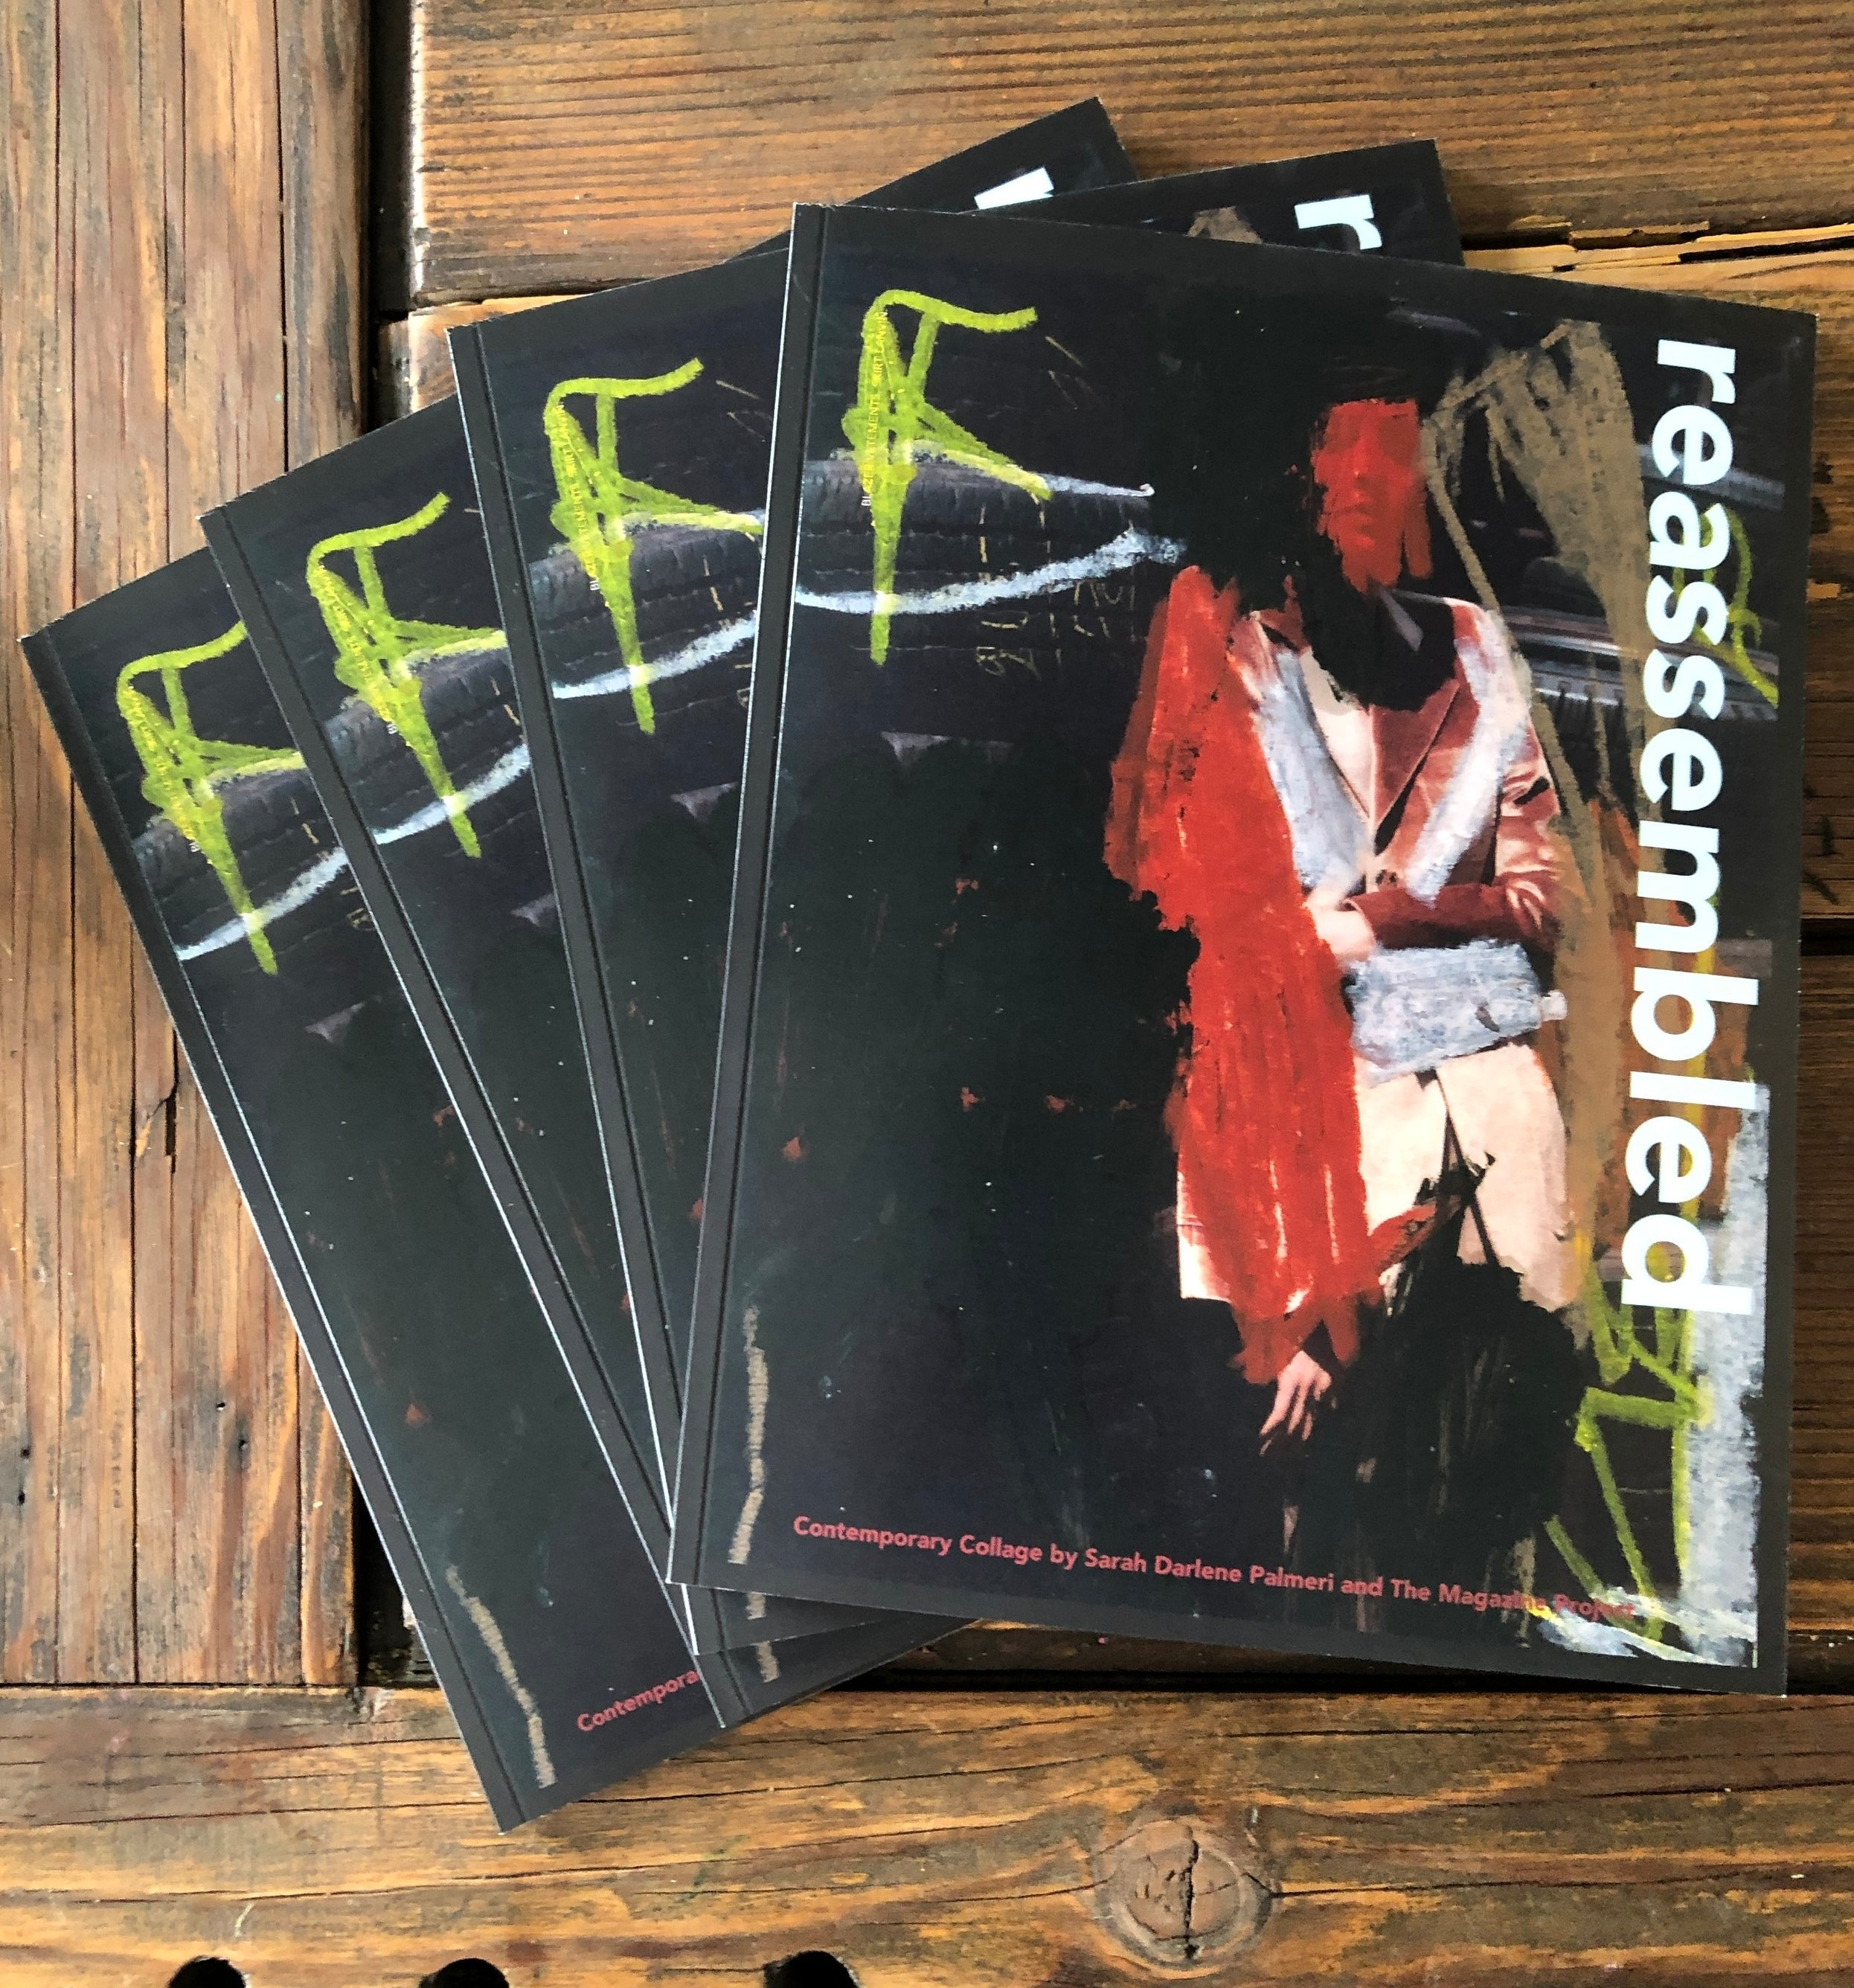 Reassembled Now Available - A portion of sales will be donated to Denver's Family Tree Roots of Courage shelter, a confidential, residential facility for survivors of domestic violence and those with children.Learn more about The Magazine Project here.